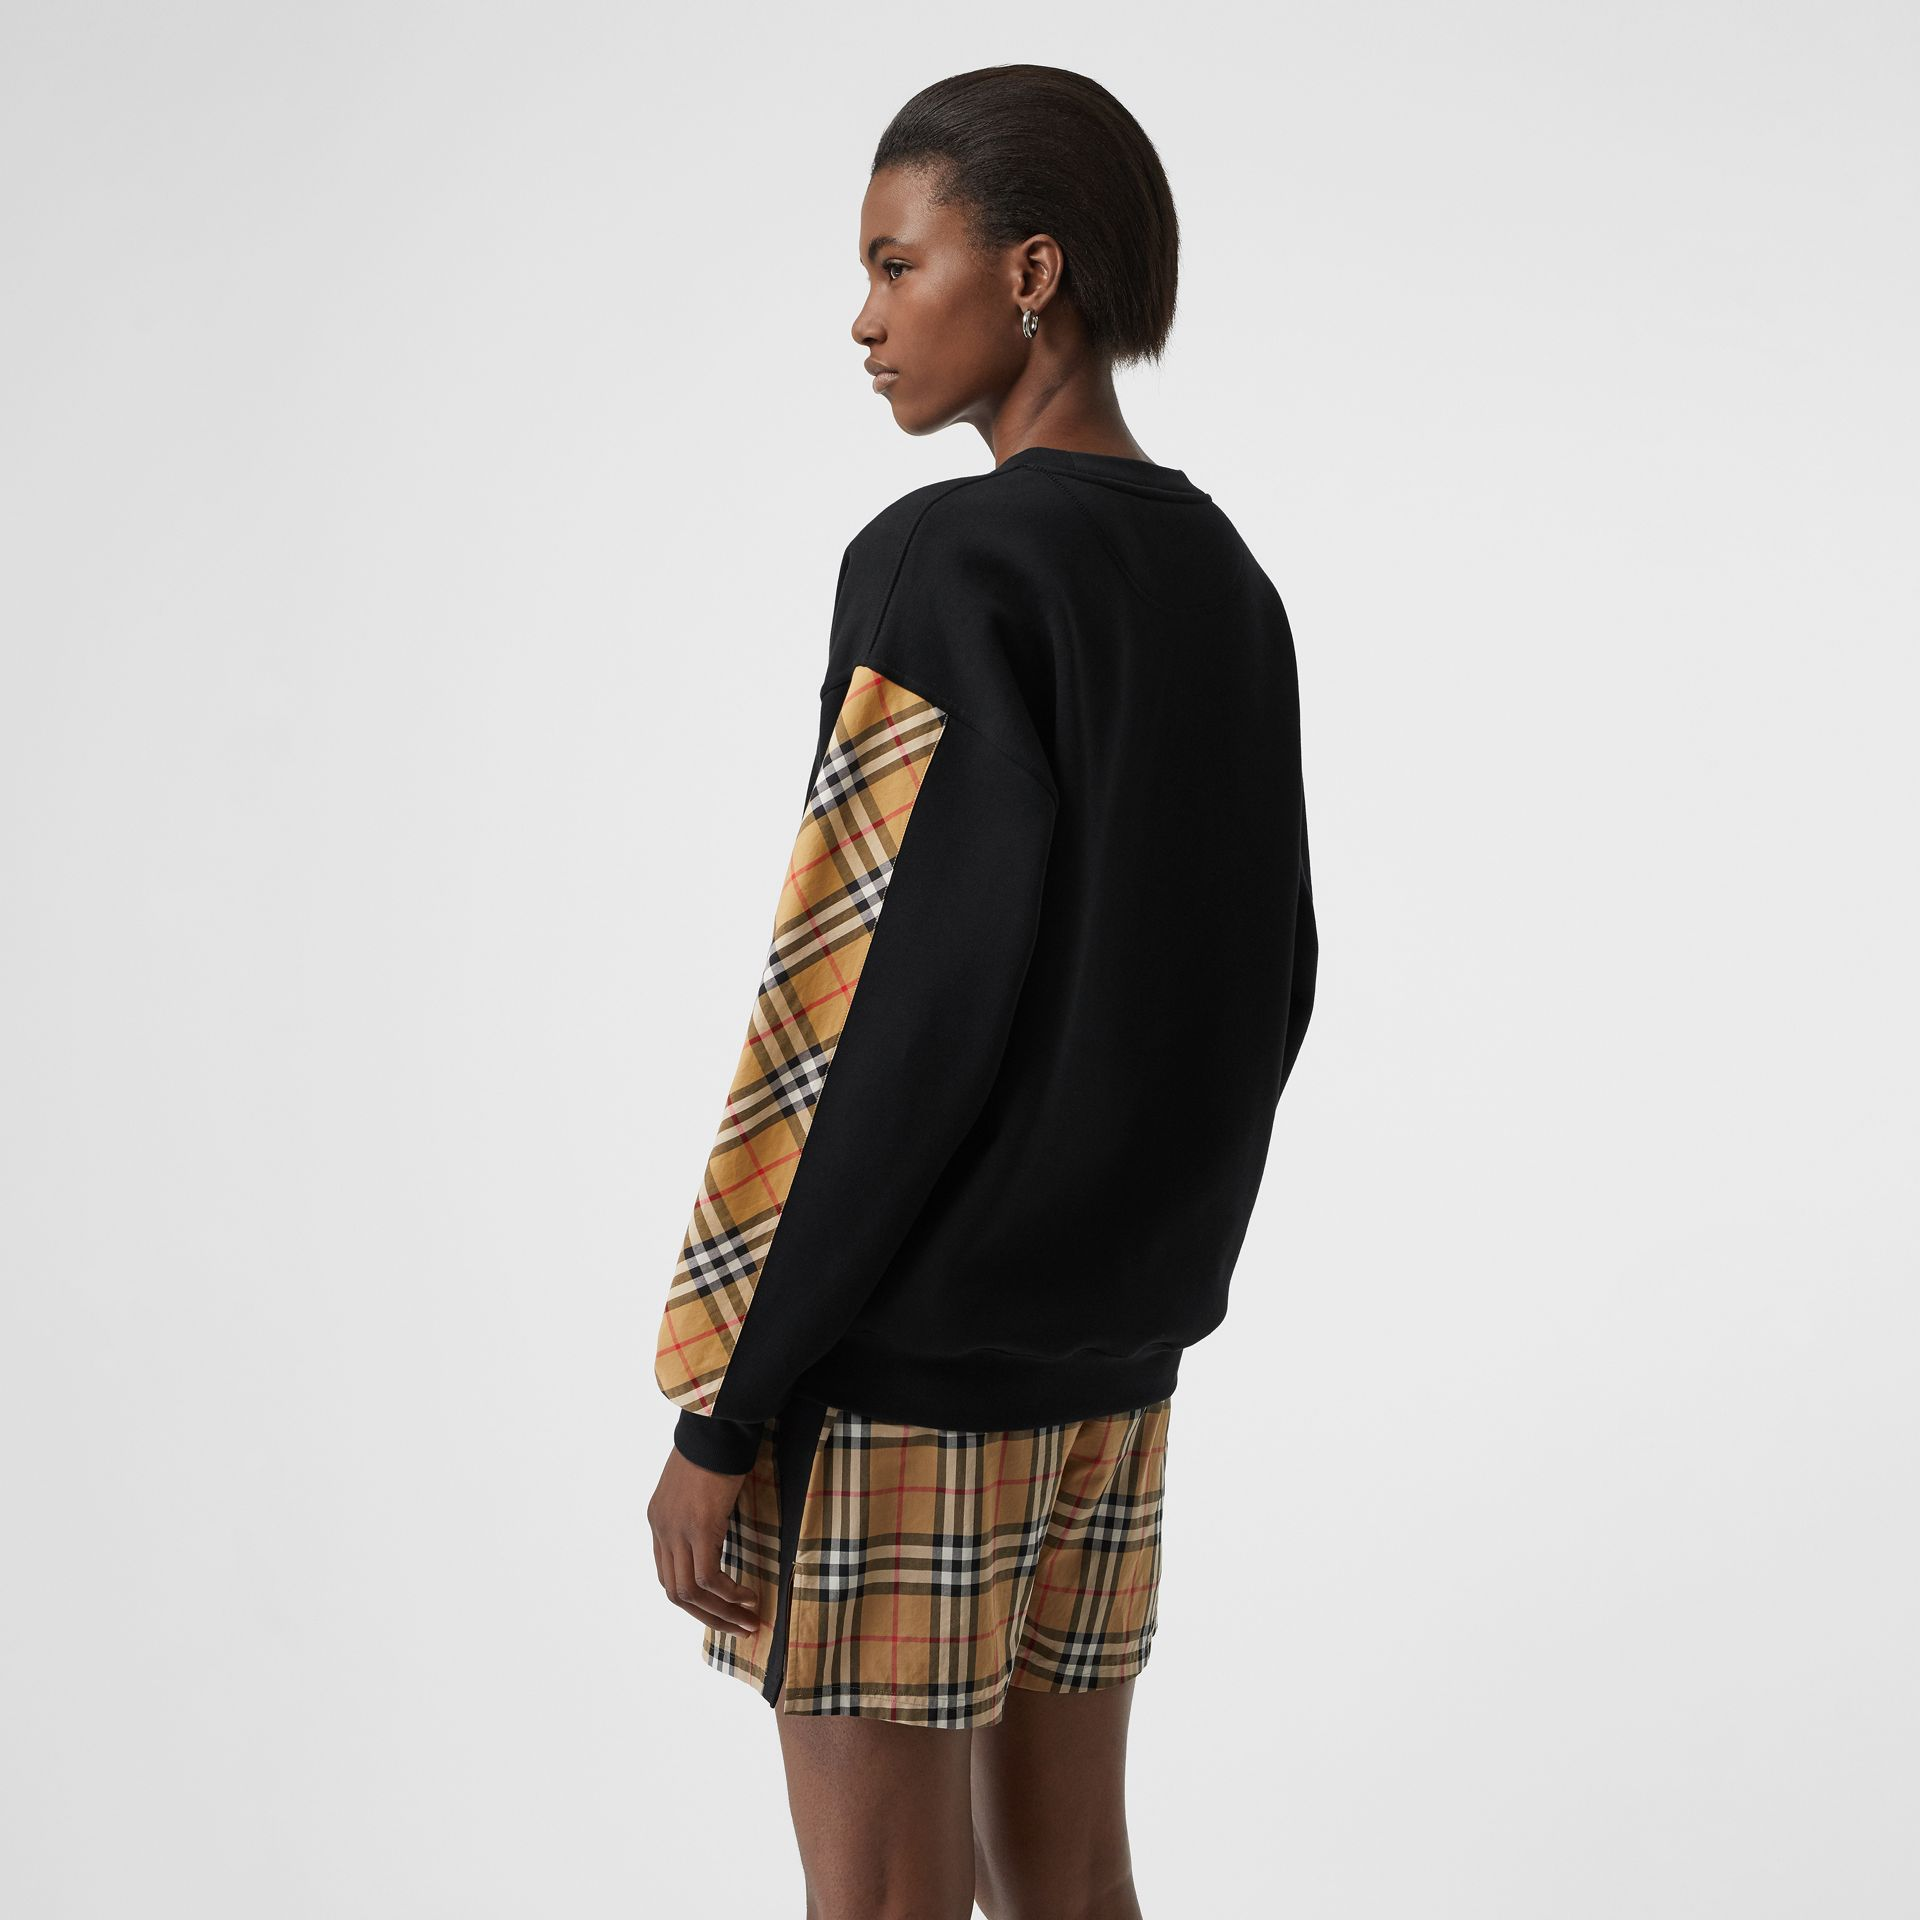 Sweat-shirt en jersey avec détails Vintage check (Noir) - Femme | Burberry - photo de la galerie 2